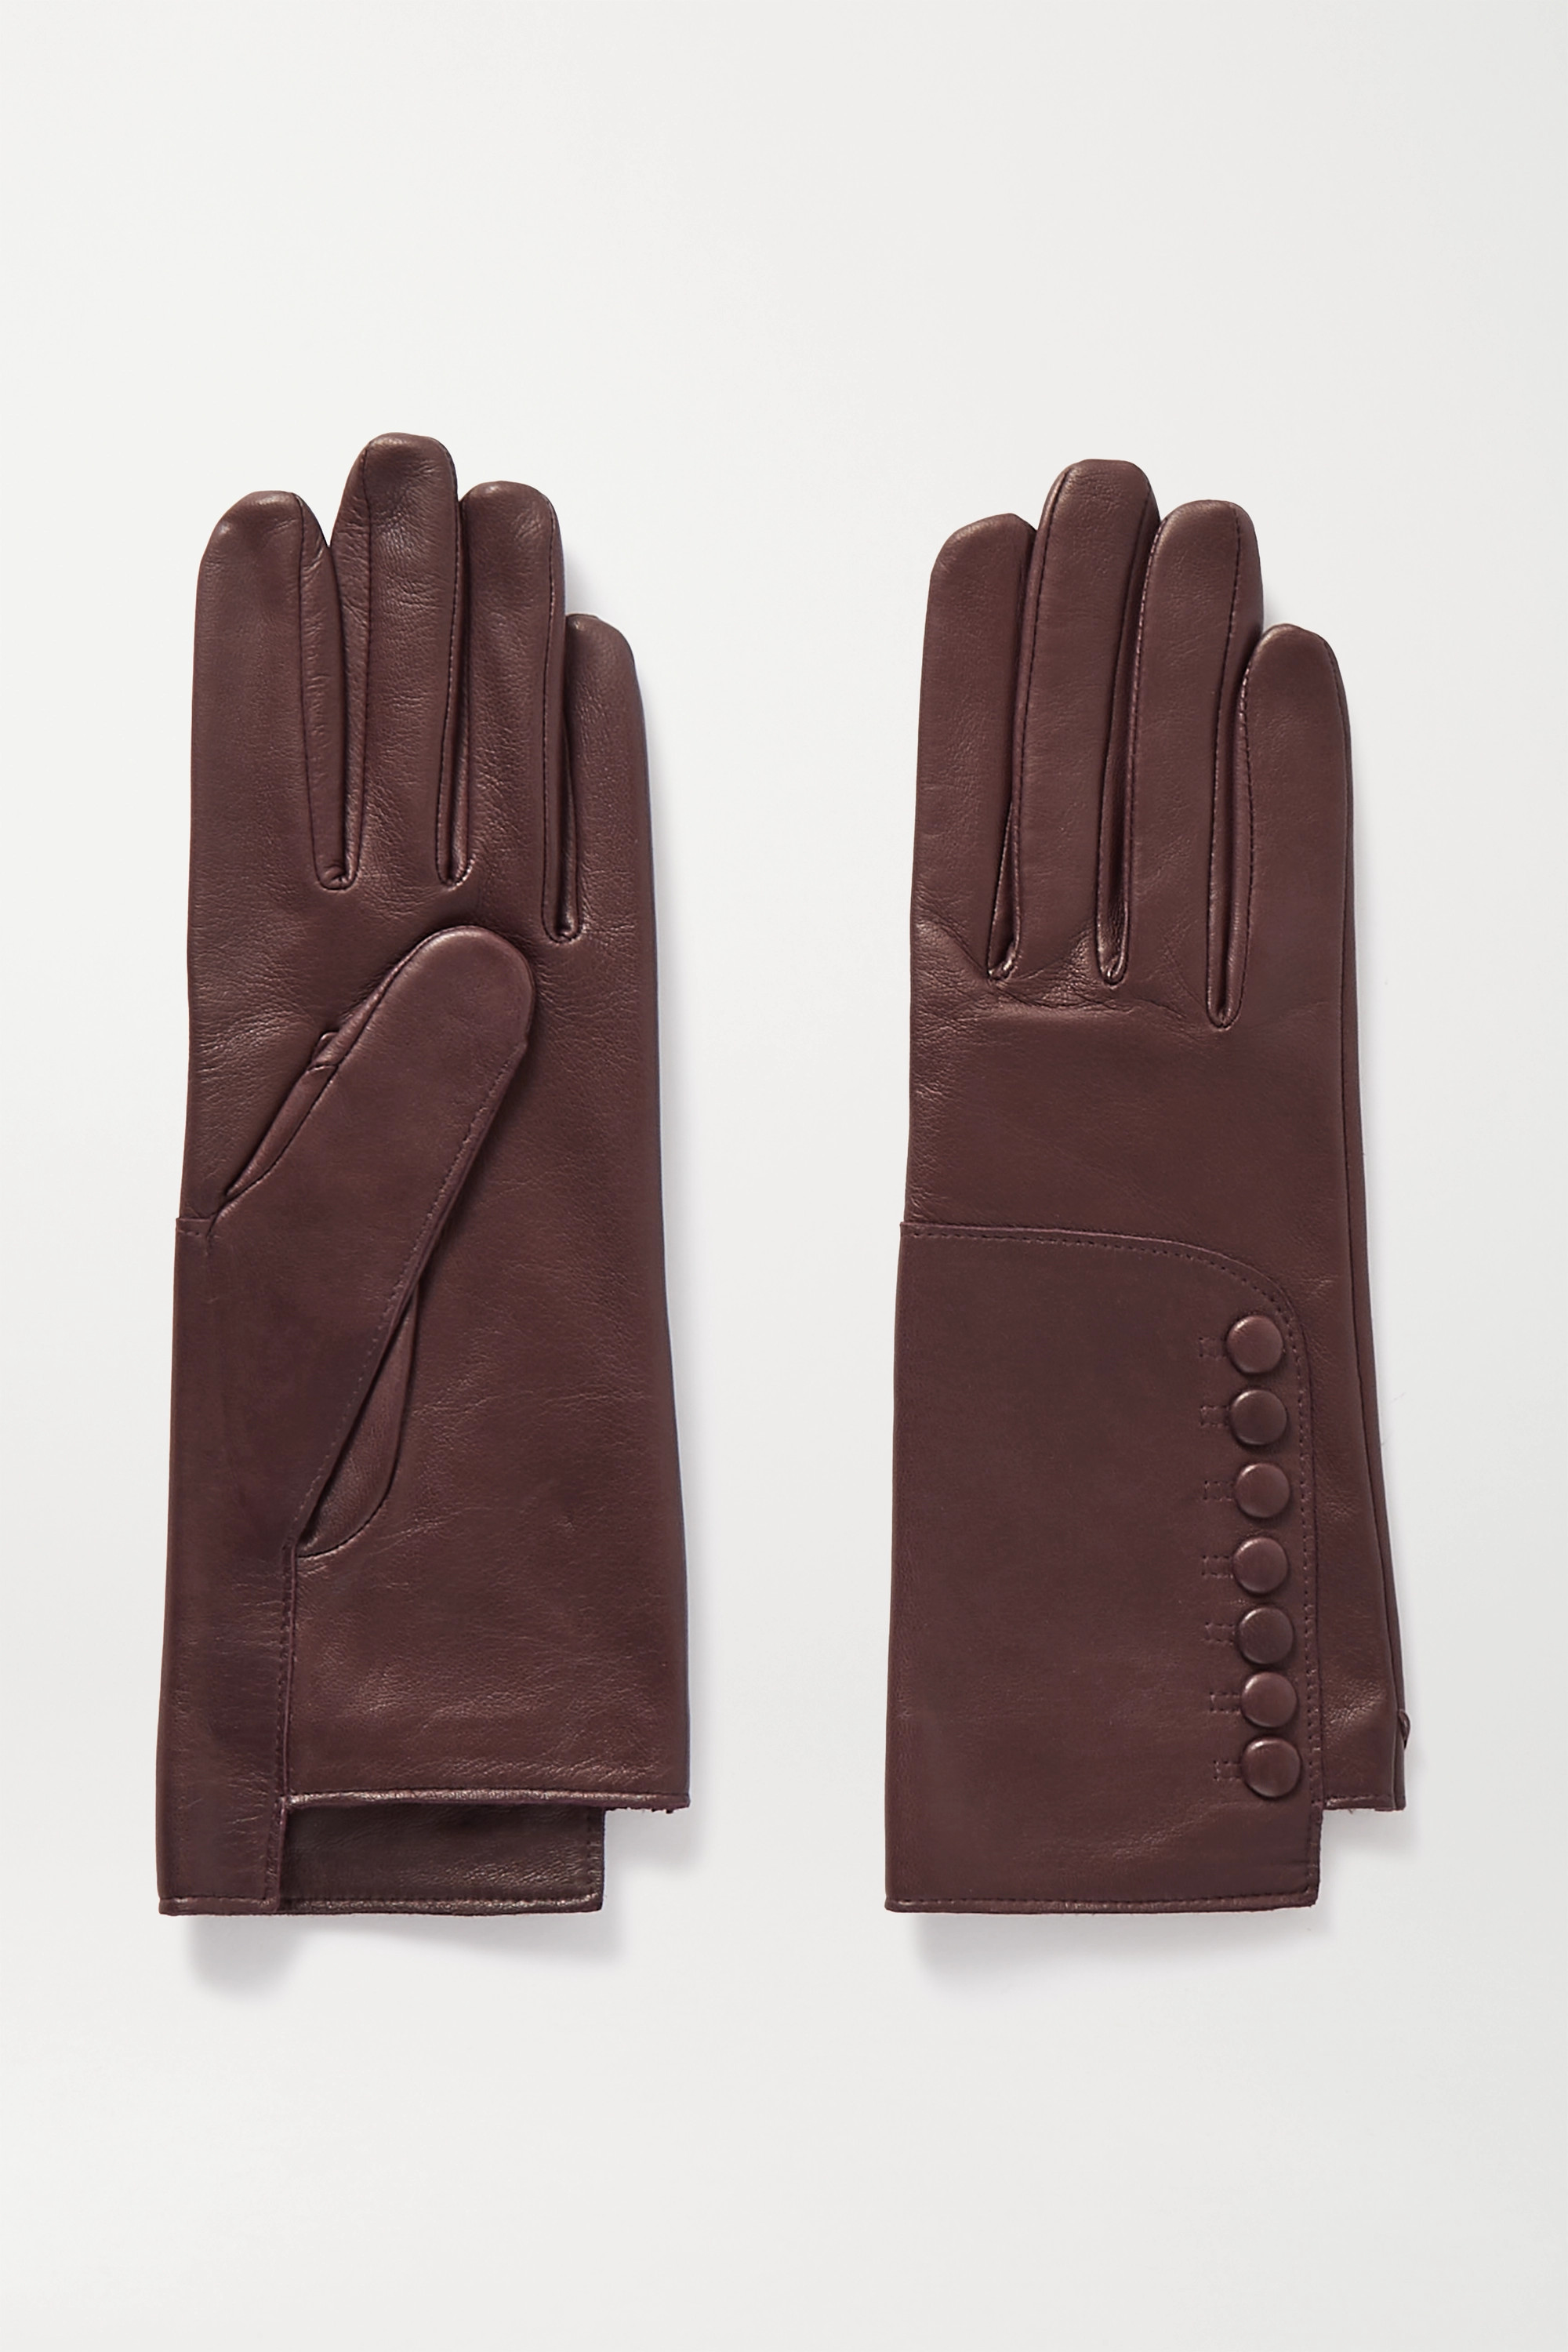 Agnelle Rachelle leather gloves